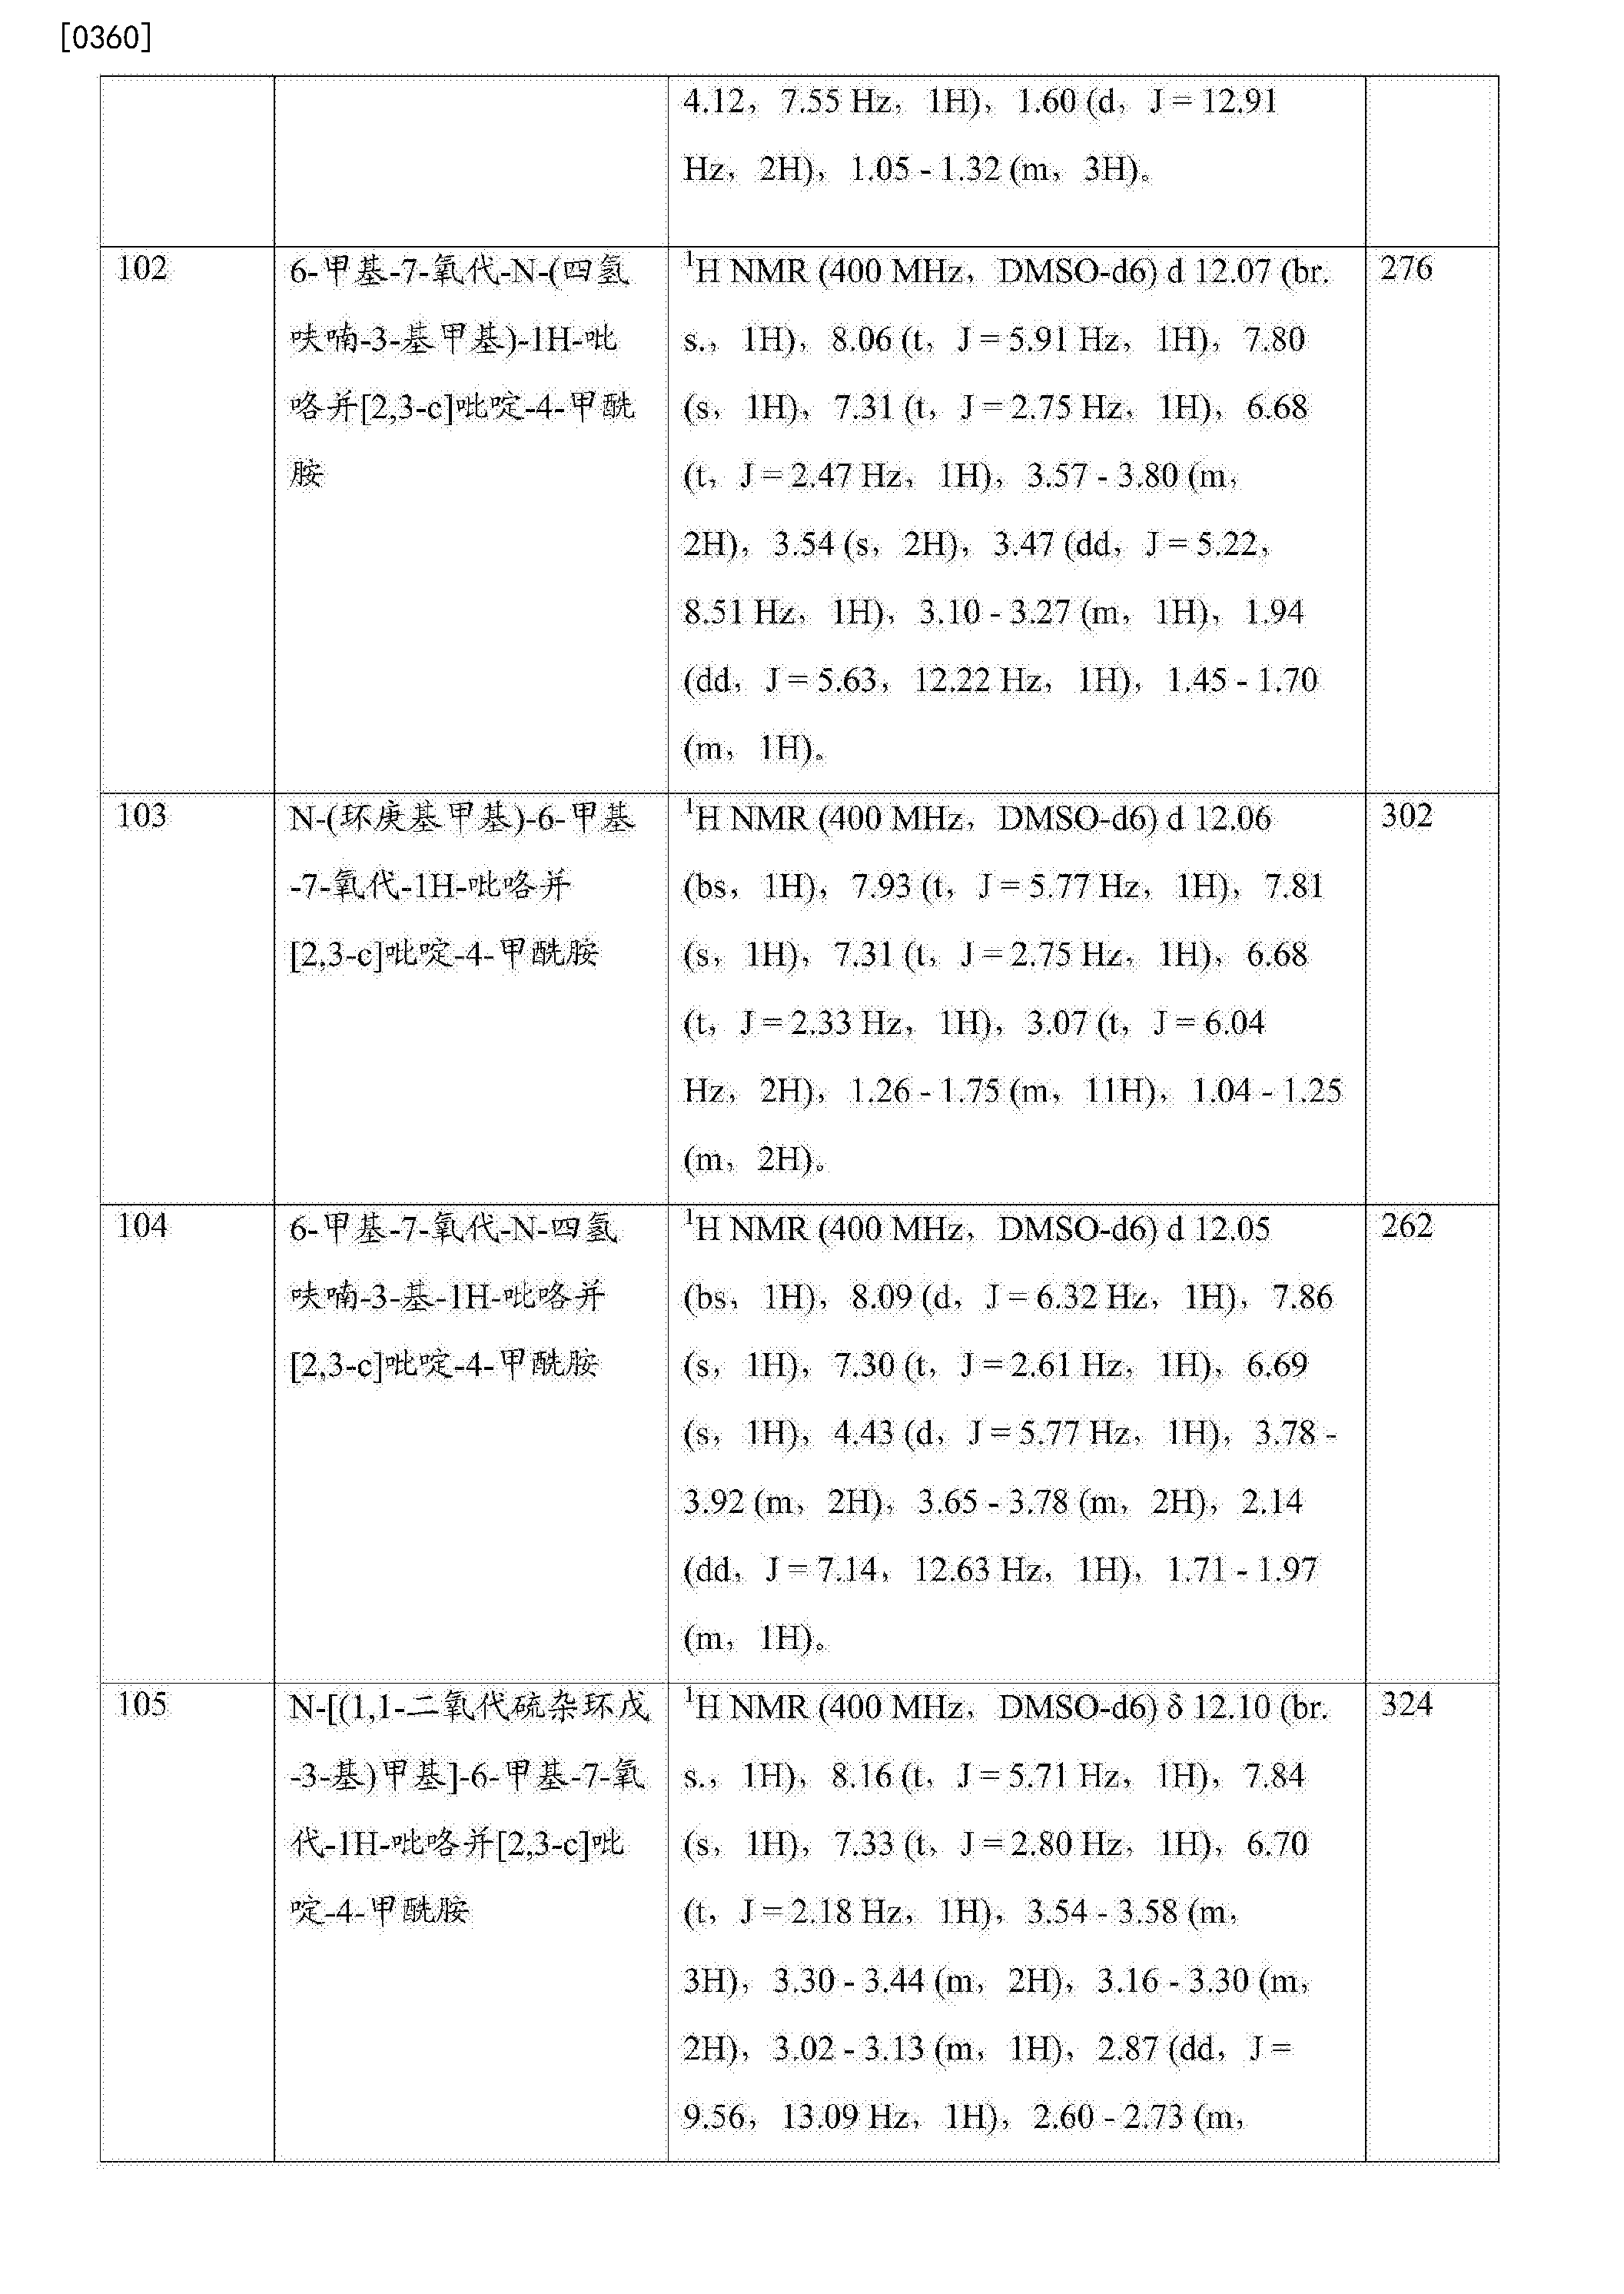 CN107108613A - Bromodomain inhibitors and uses thereof - Google Patents 050d34c0524